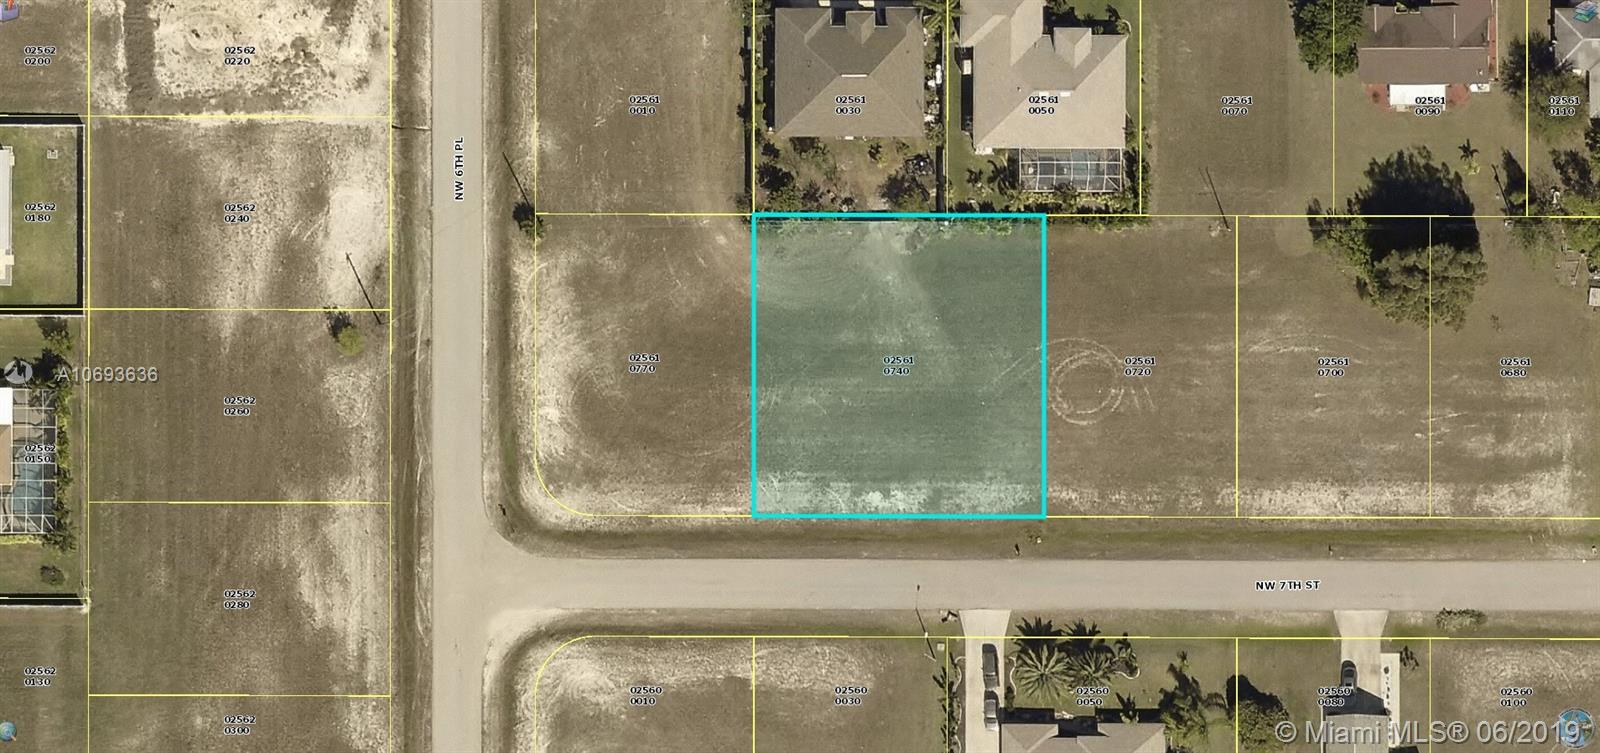 607 NW 7 ST, Cape Coral, Other City - In The State Of Florida, FL 33993